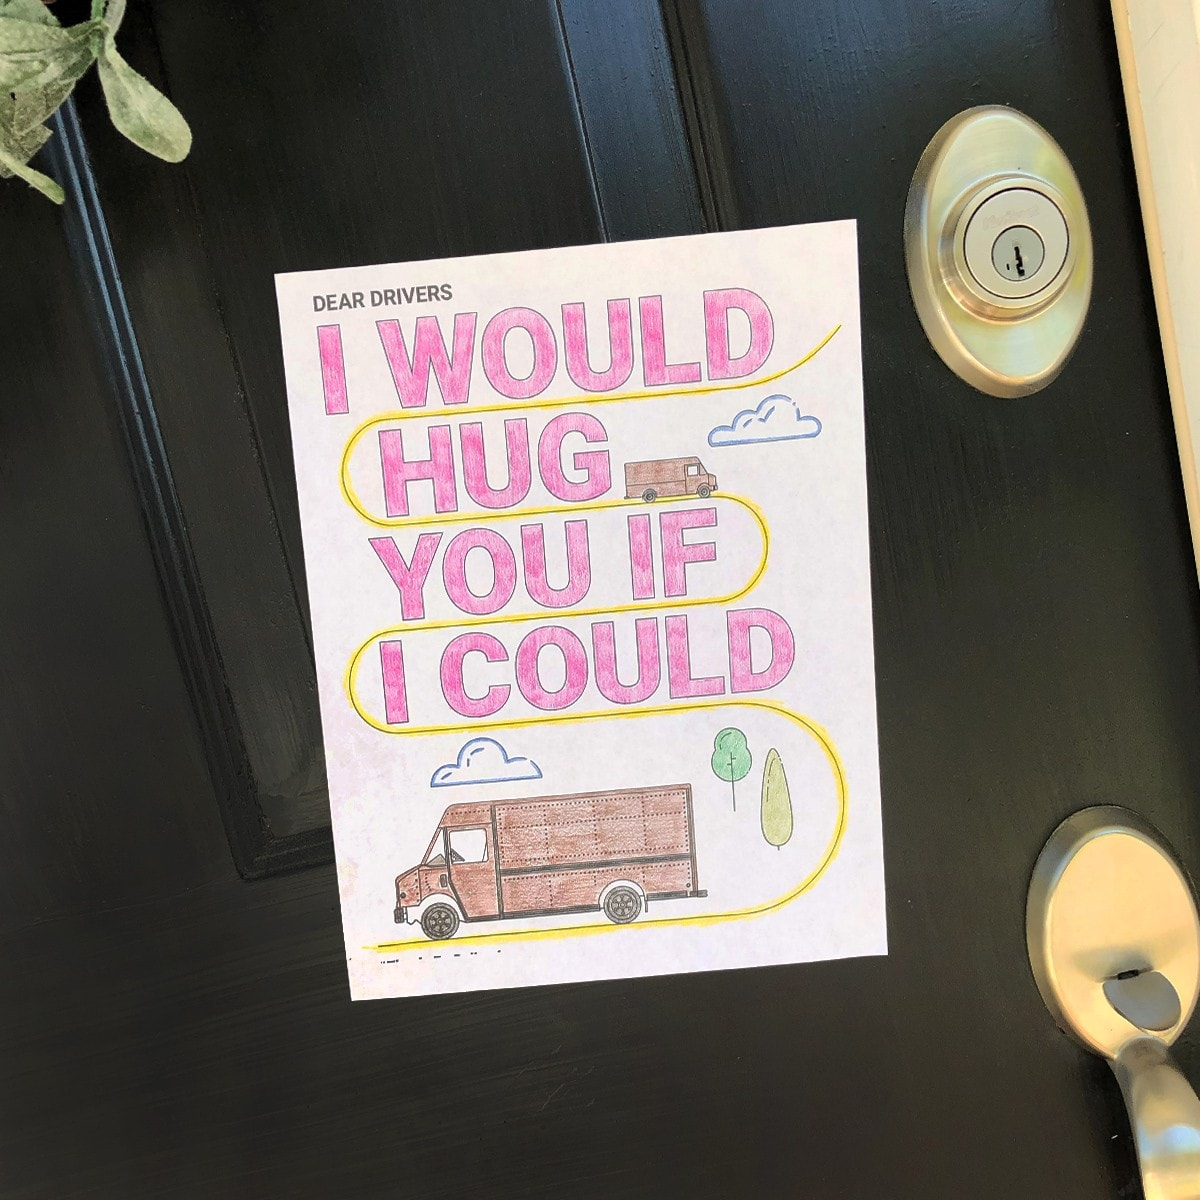 image of door with coloring page that says 'I would hug you if I could'